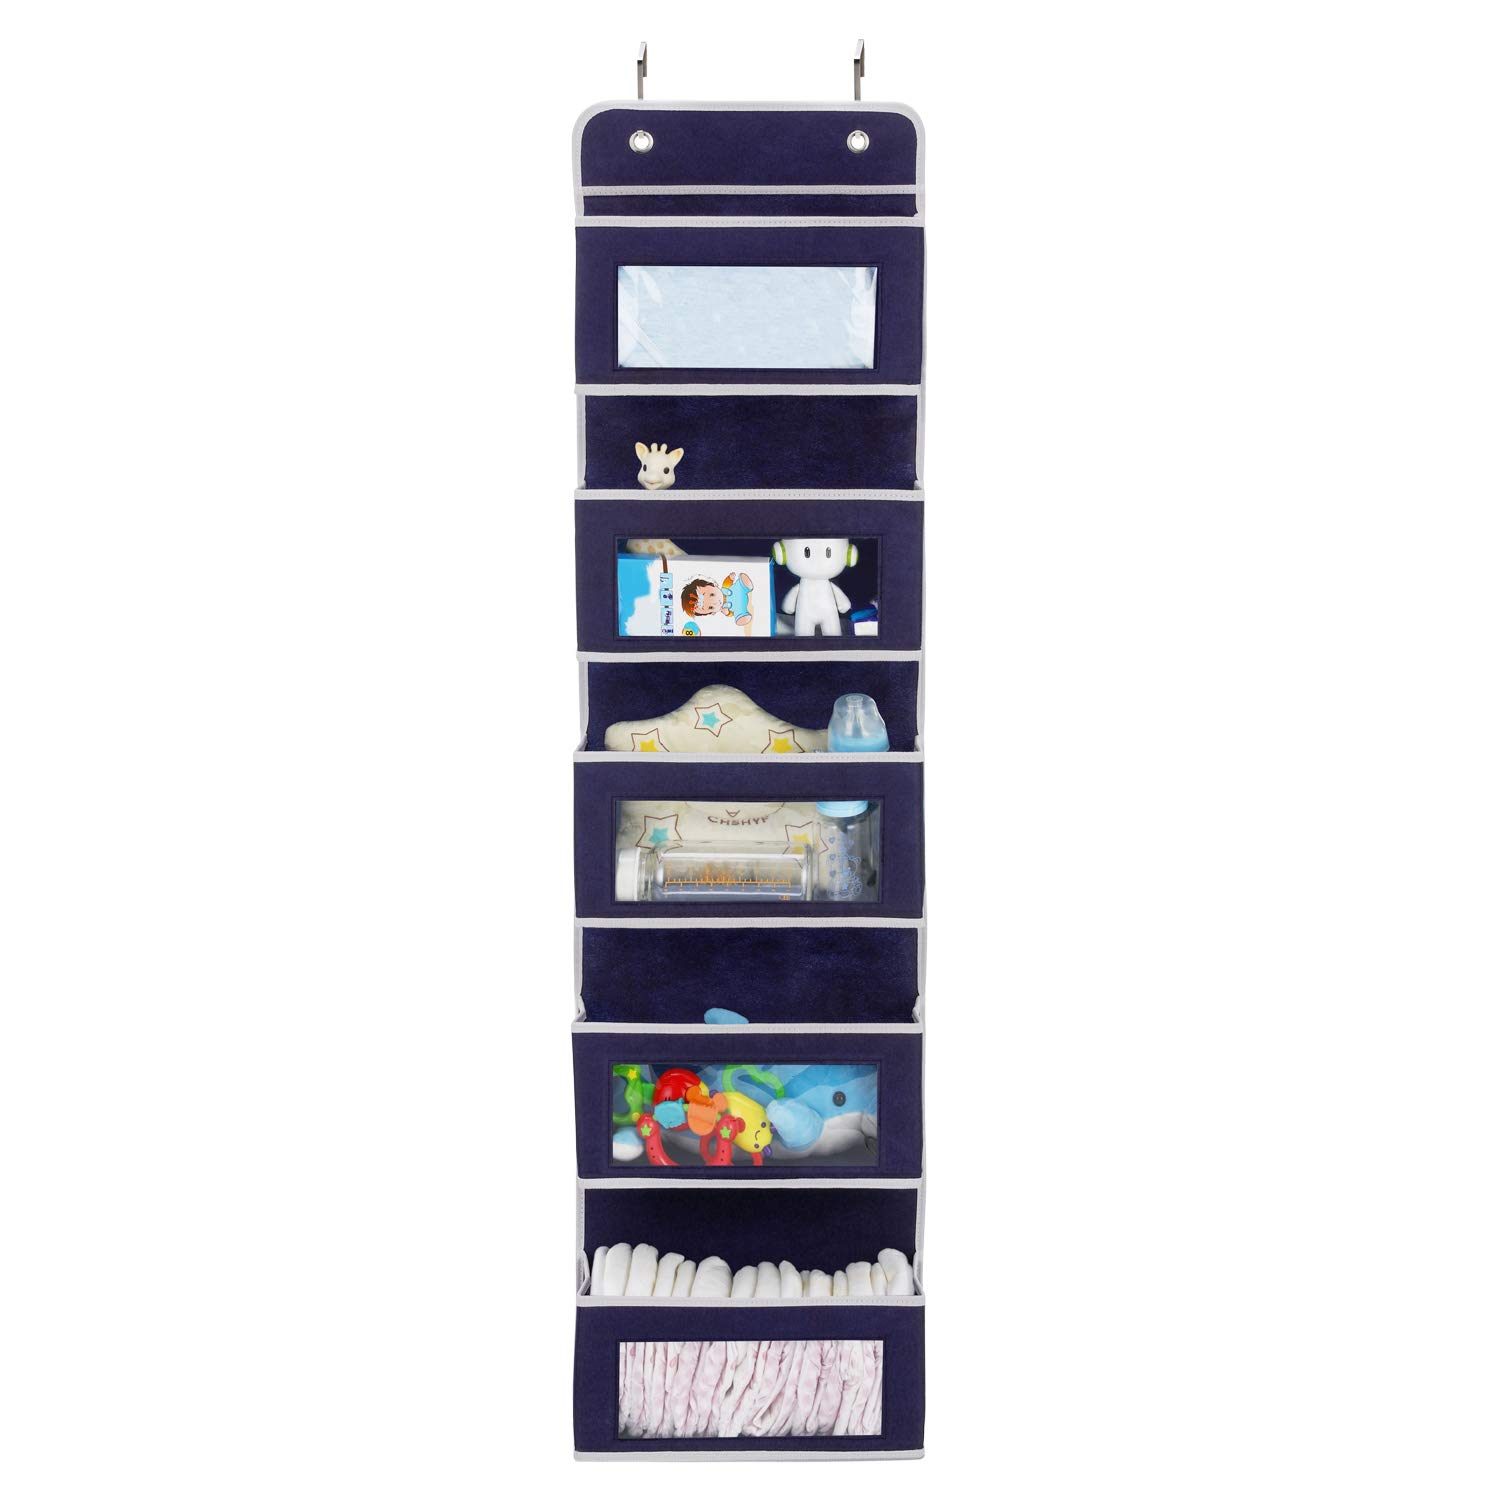 Magicfly Over The Door Storage with 5 Large Clear Window Pocket, Wall Hanging Storage Organizer for Pantry Baby Nursery Bathroom Closet Dorm, Dark Blue